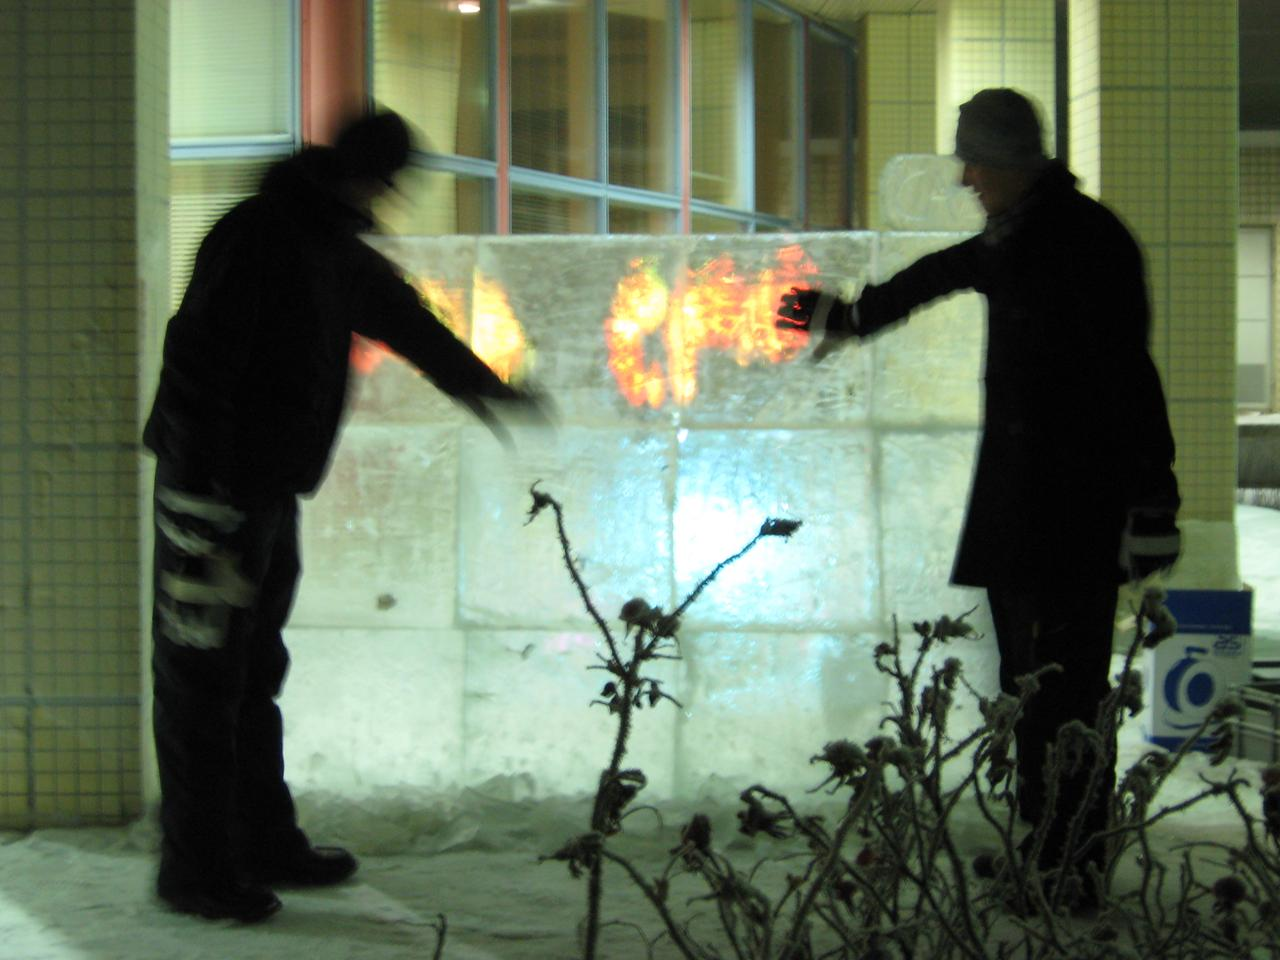 The hand movements of both gloved and ungloved users were tracked using rear-diffused illumination multi-touch tracking technology and an image of flames projected behind the moving hands in real-time